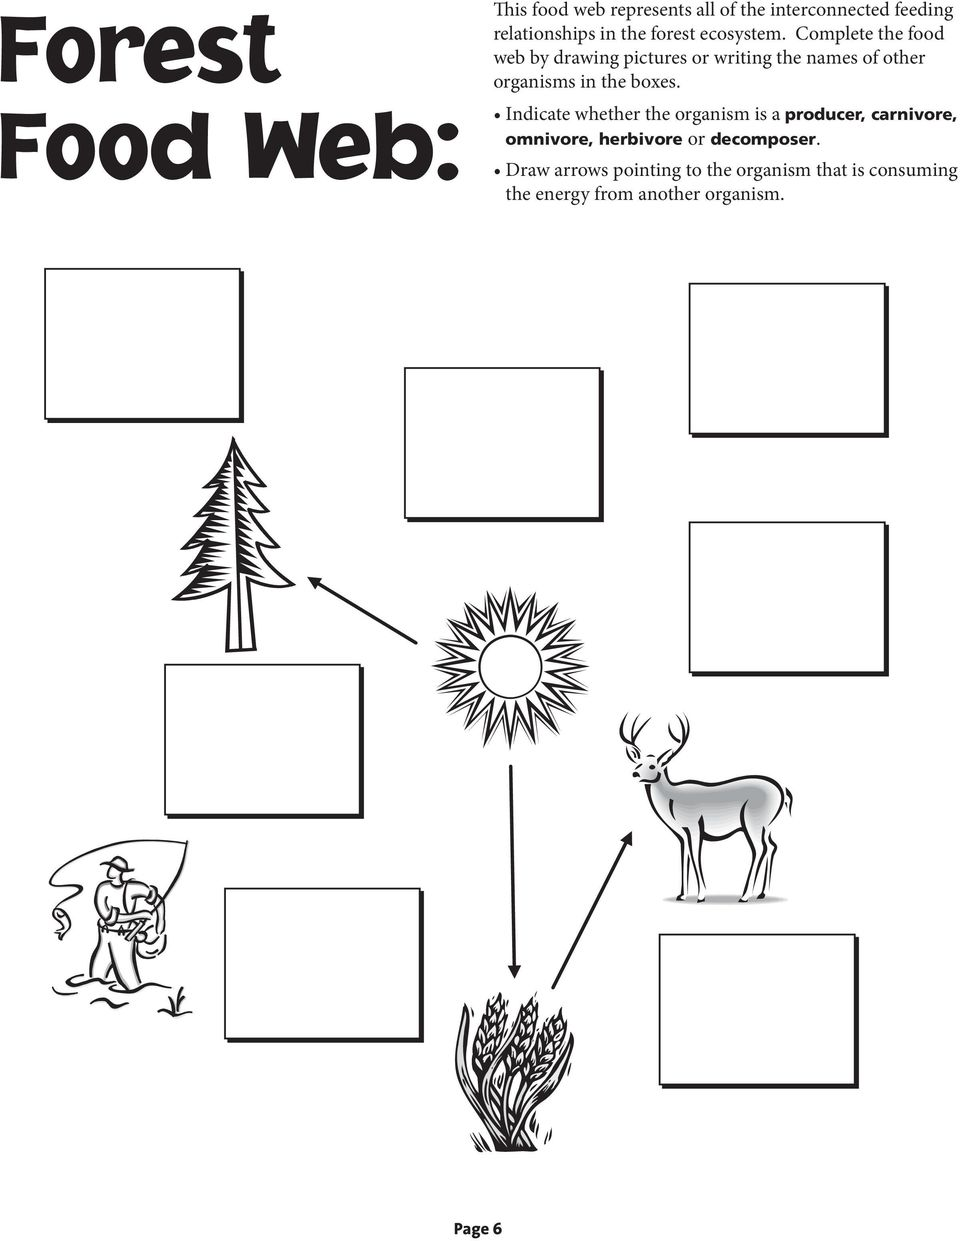 Complete the food web by drawing pictures or writing the names of other organisms in the boxes.